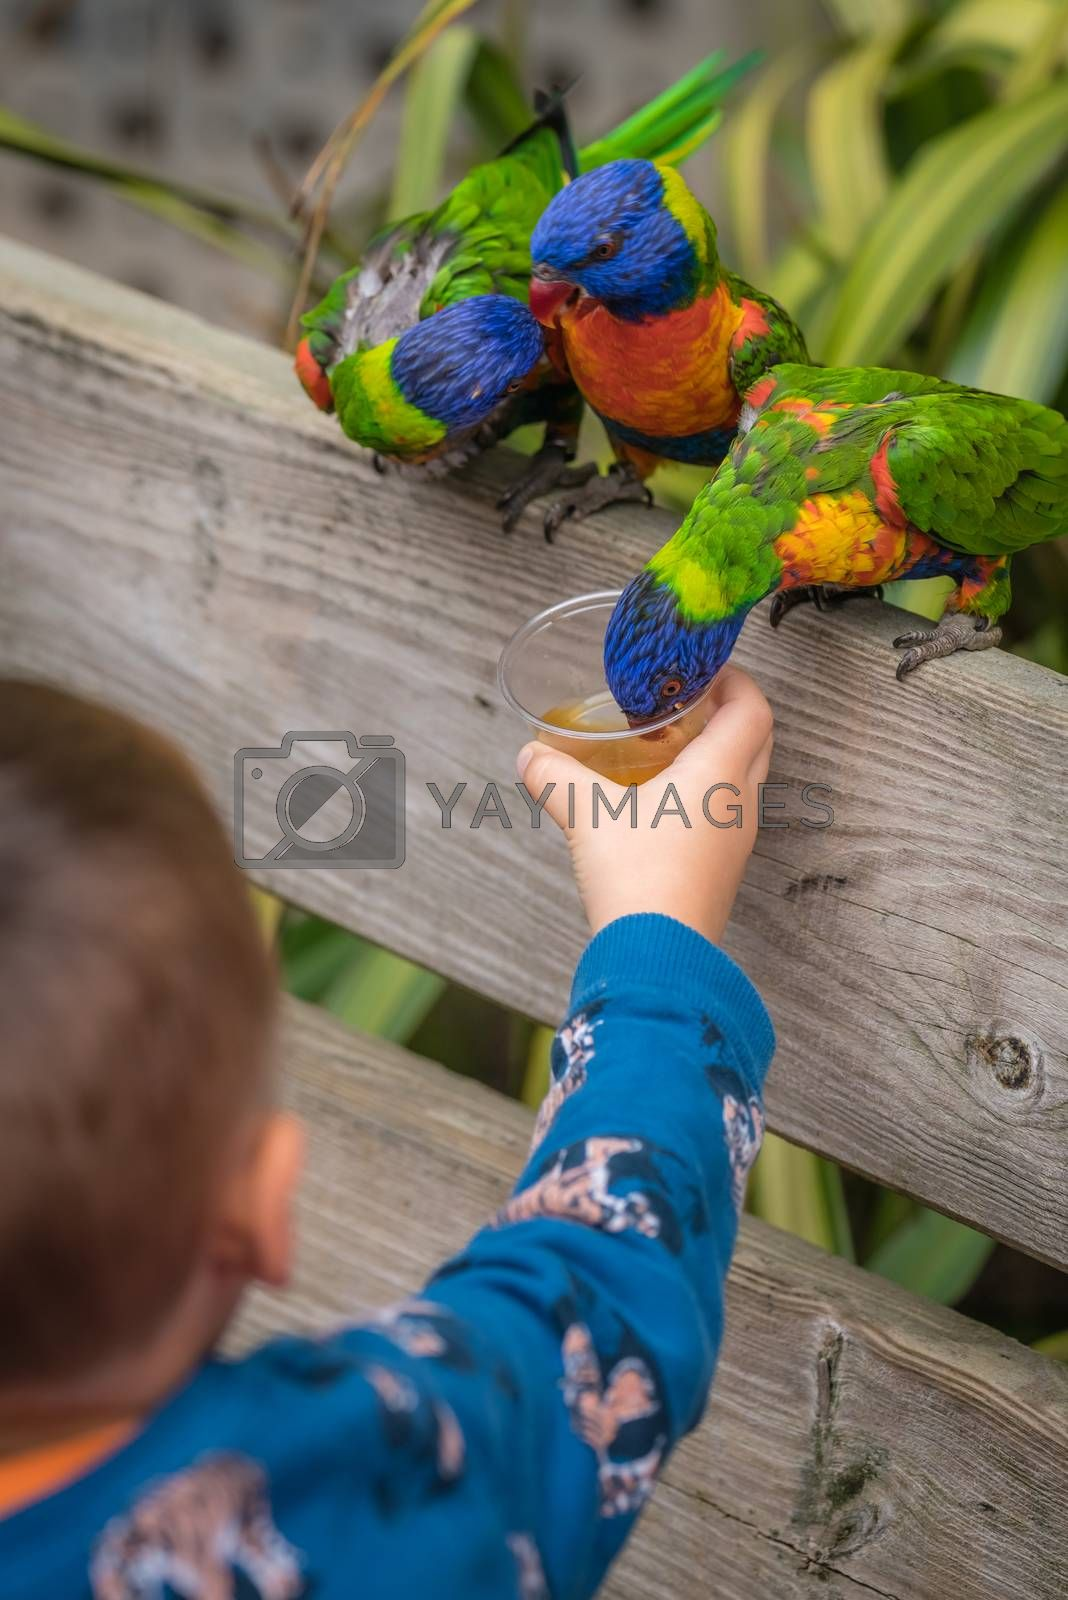 Little boy feeding sweet nectar to Colourful parrot Rainbow called Lorikeets